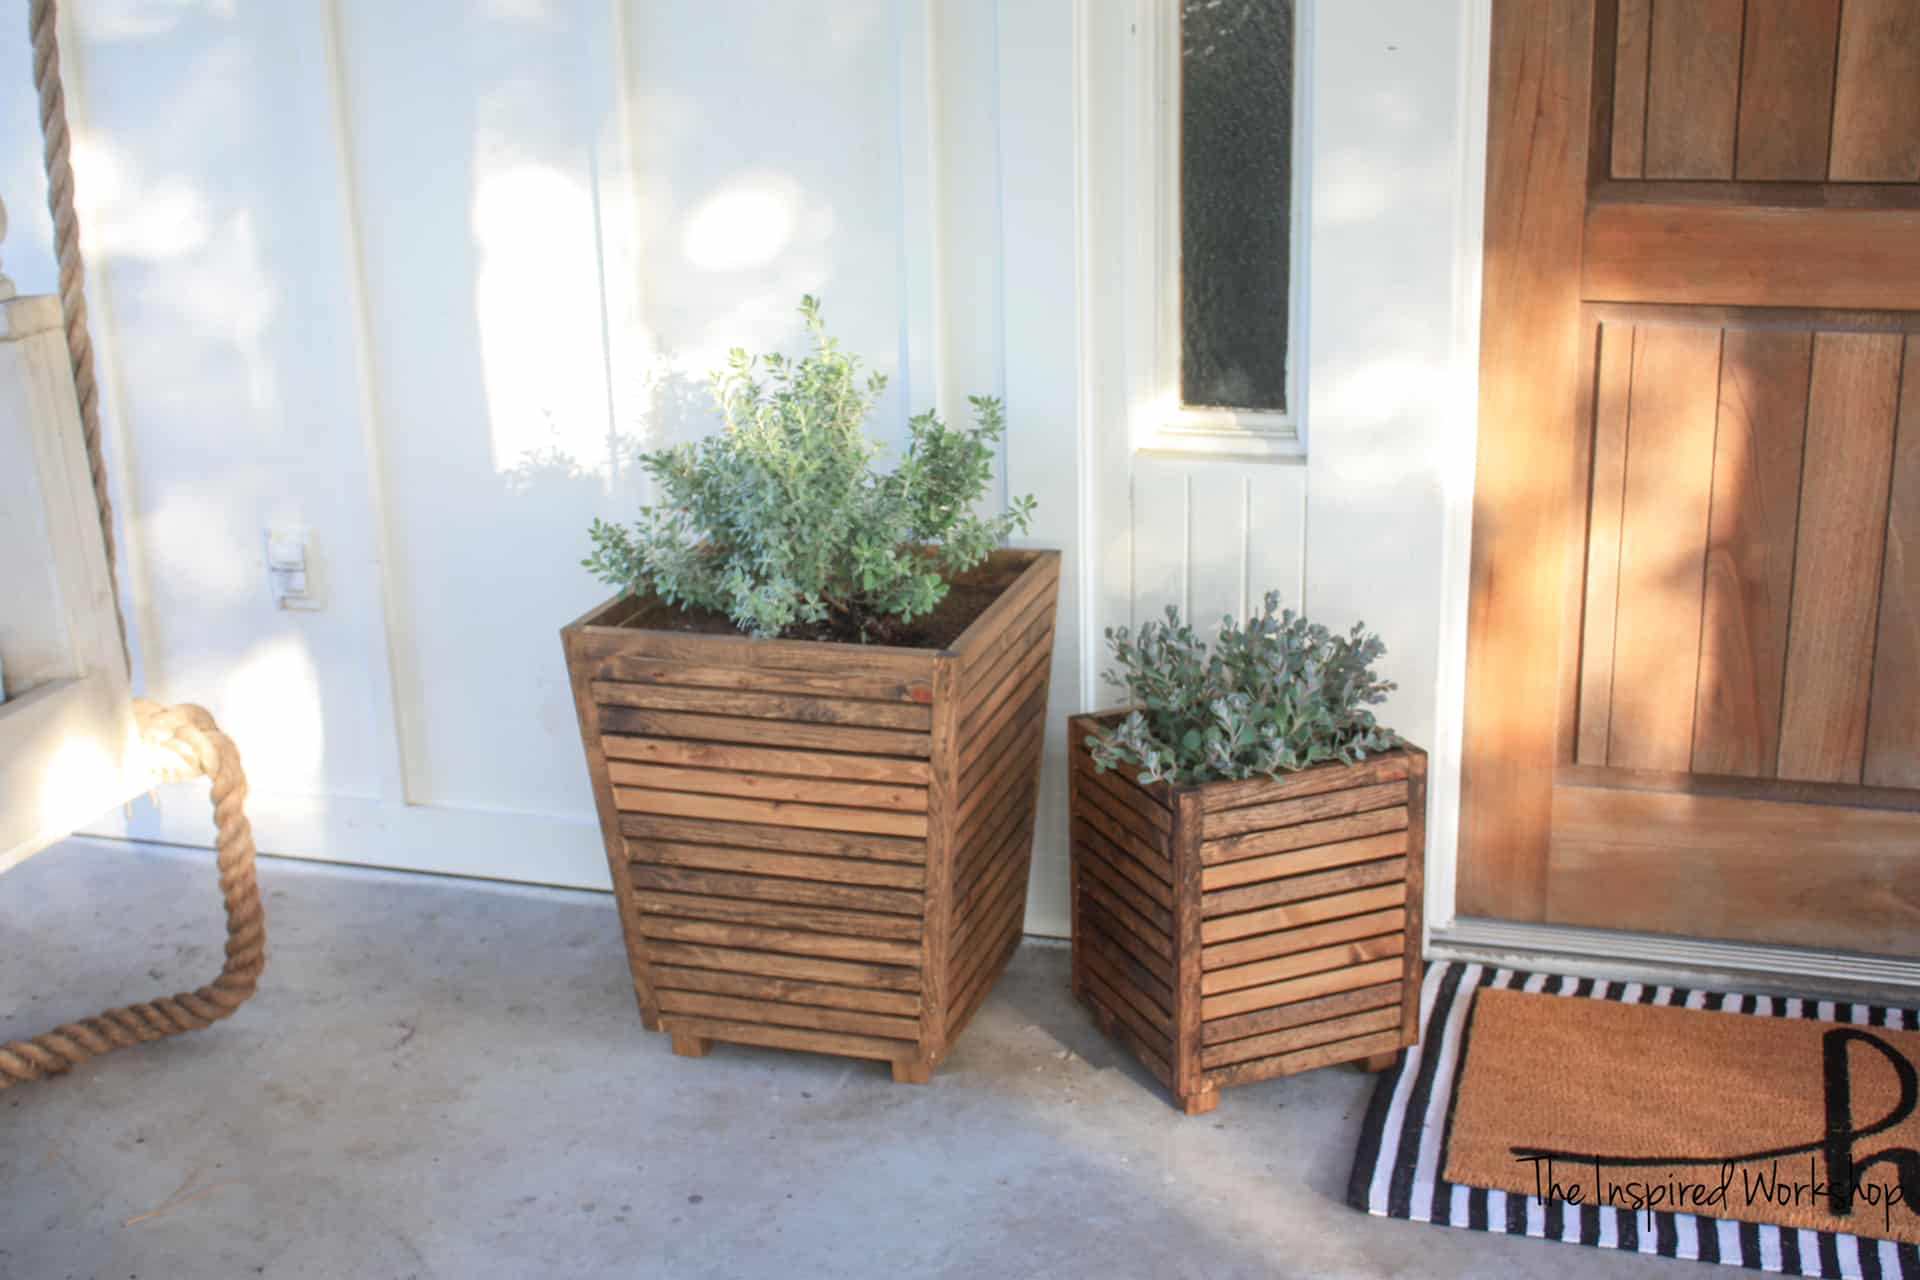 DIY wooden planter for front porch or patio